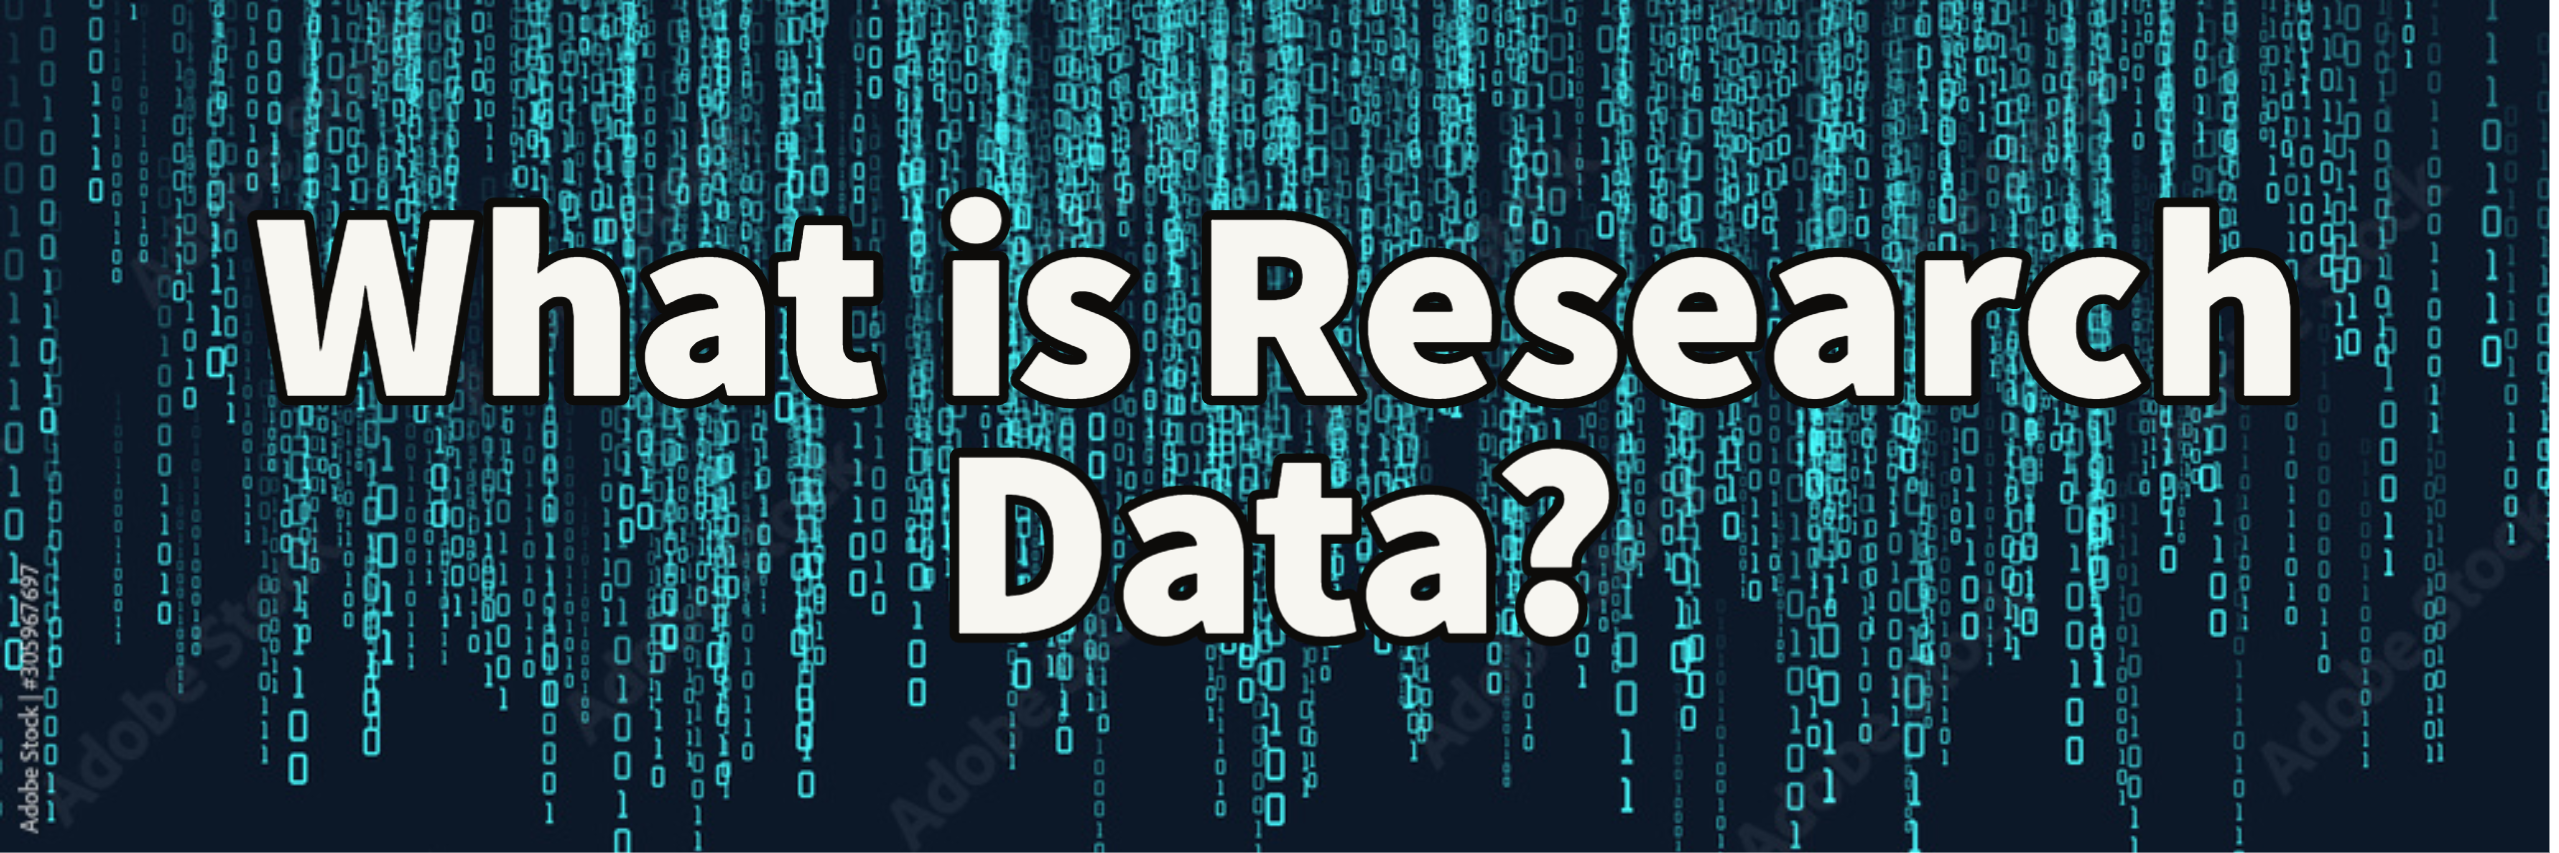 what is research data?